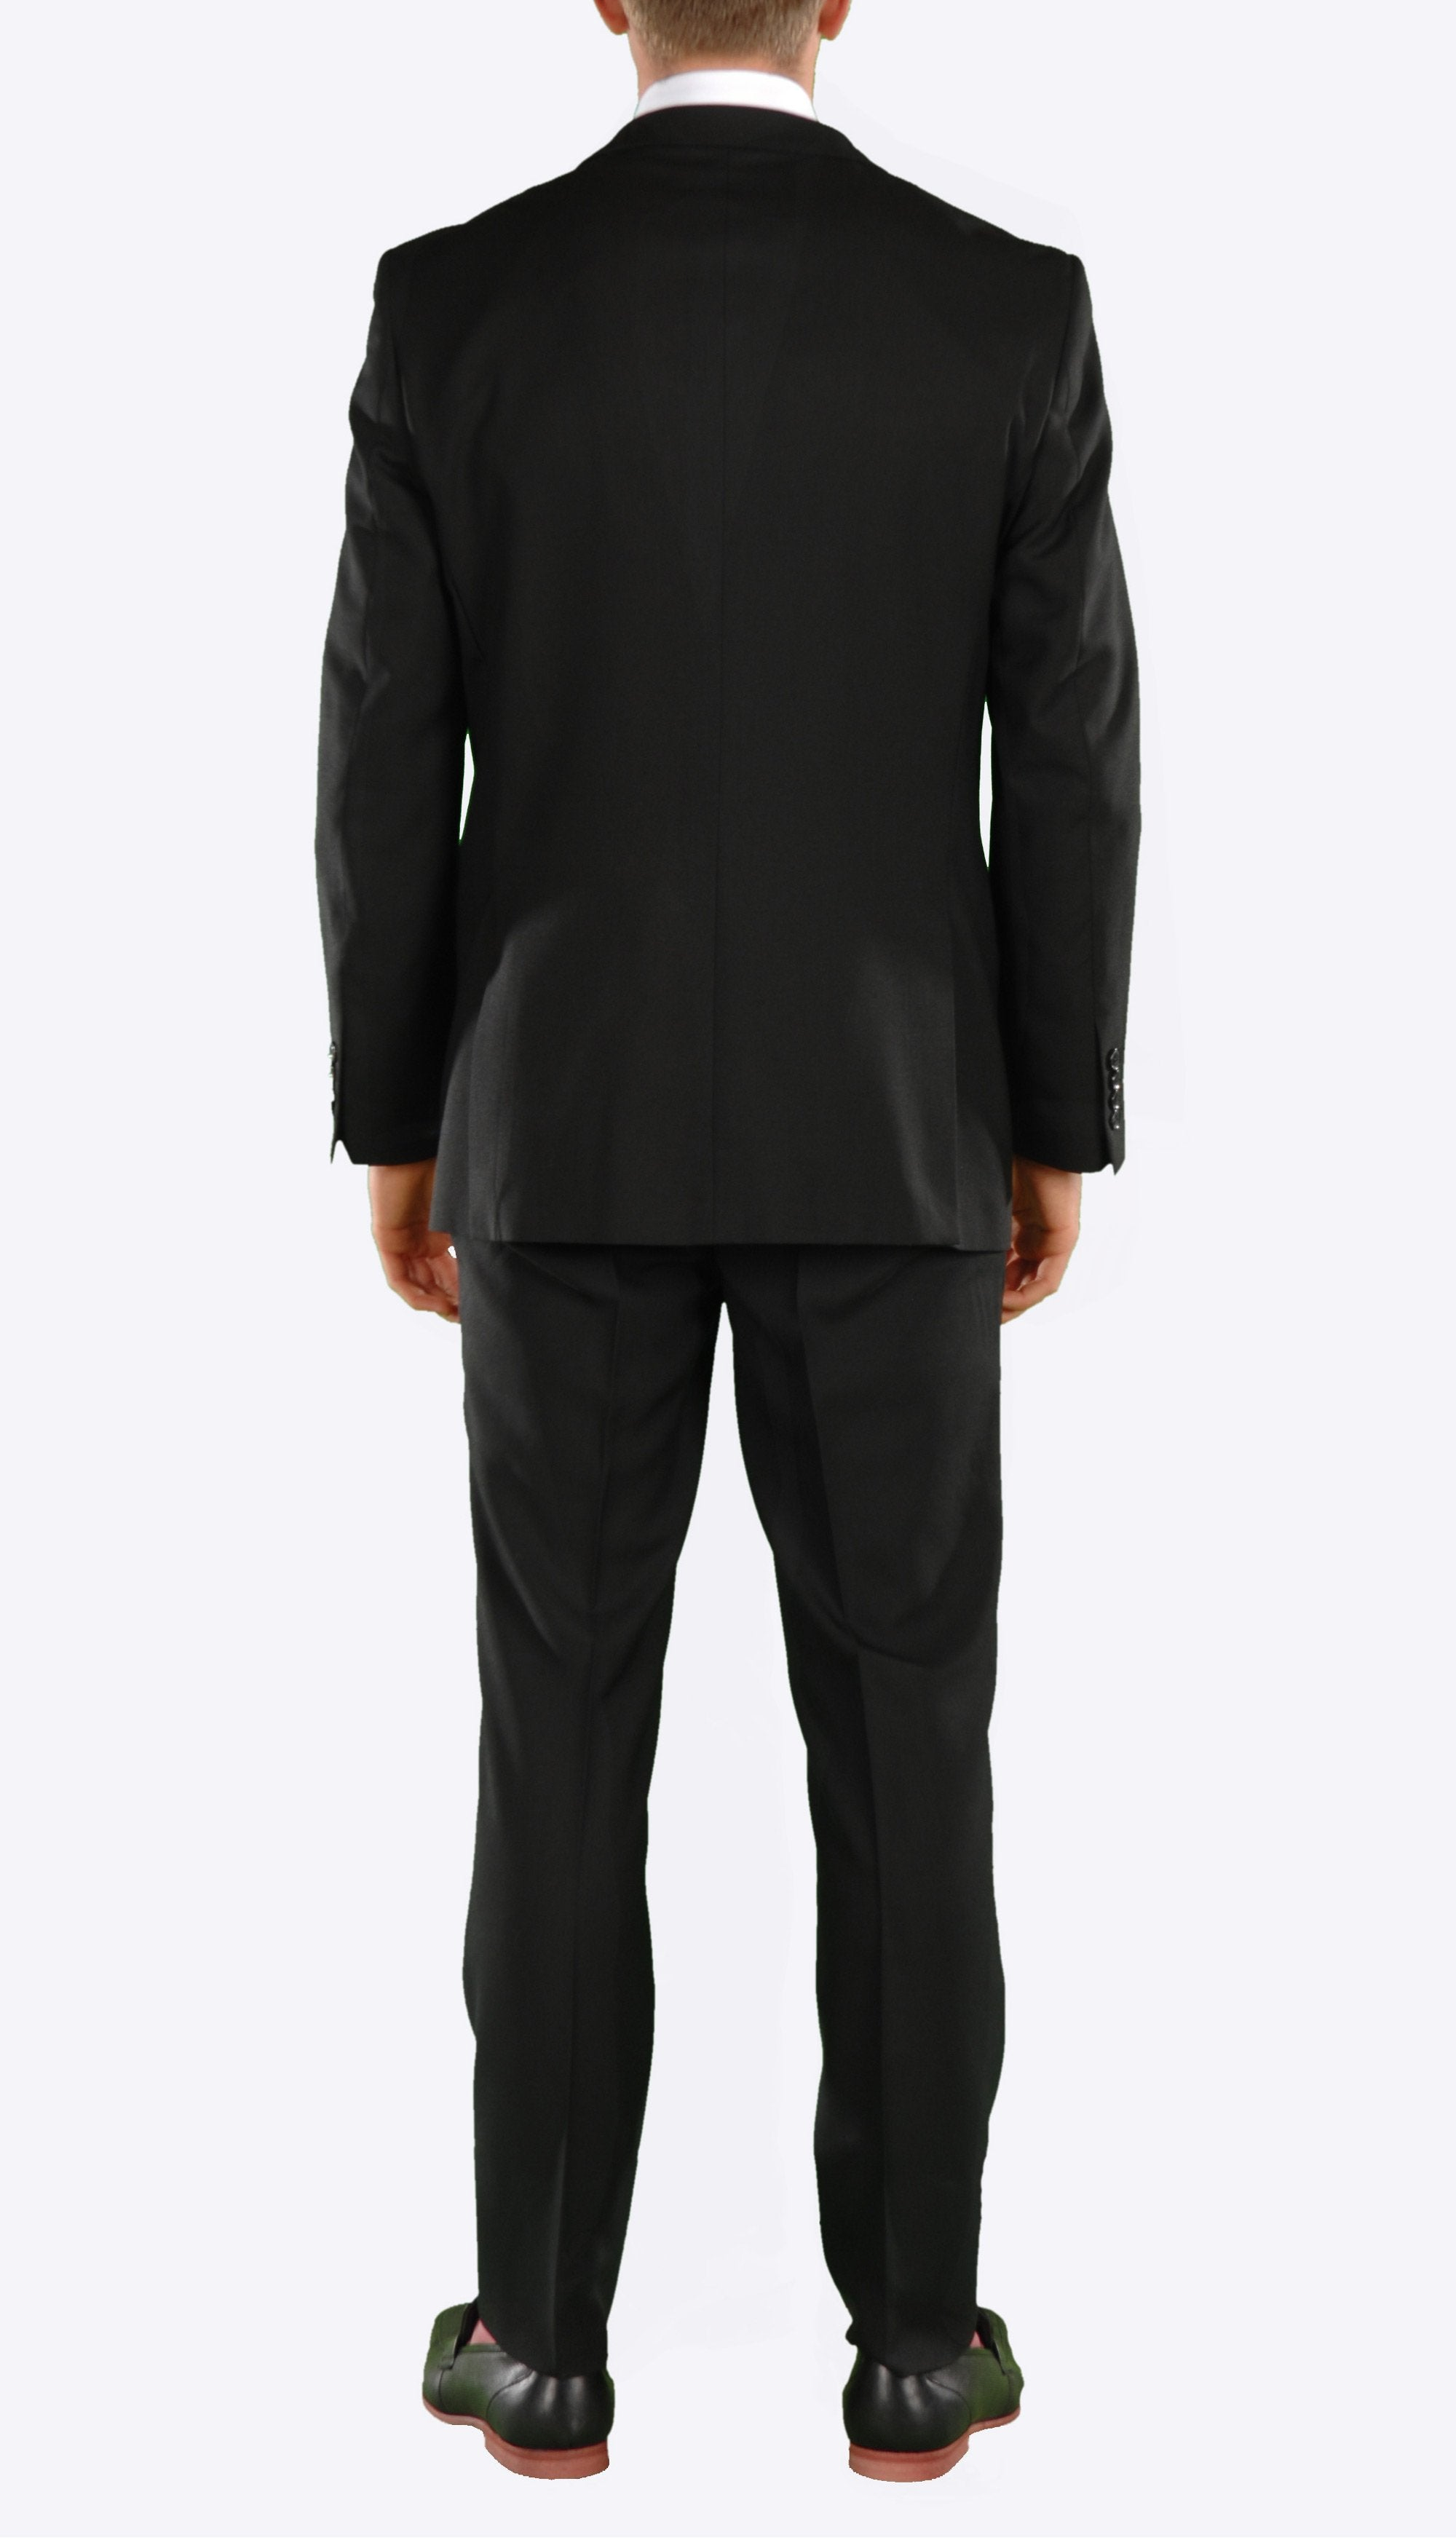 Black Regular Fit Suit - 2PC - FORD - Ferrecci USA